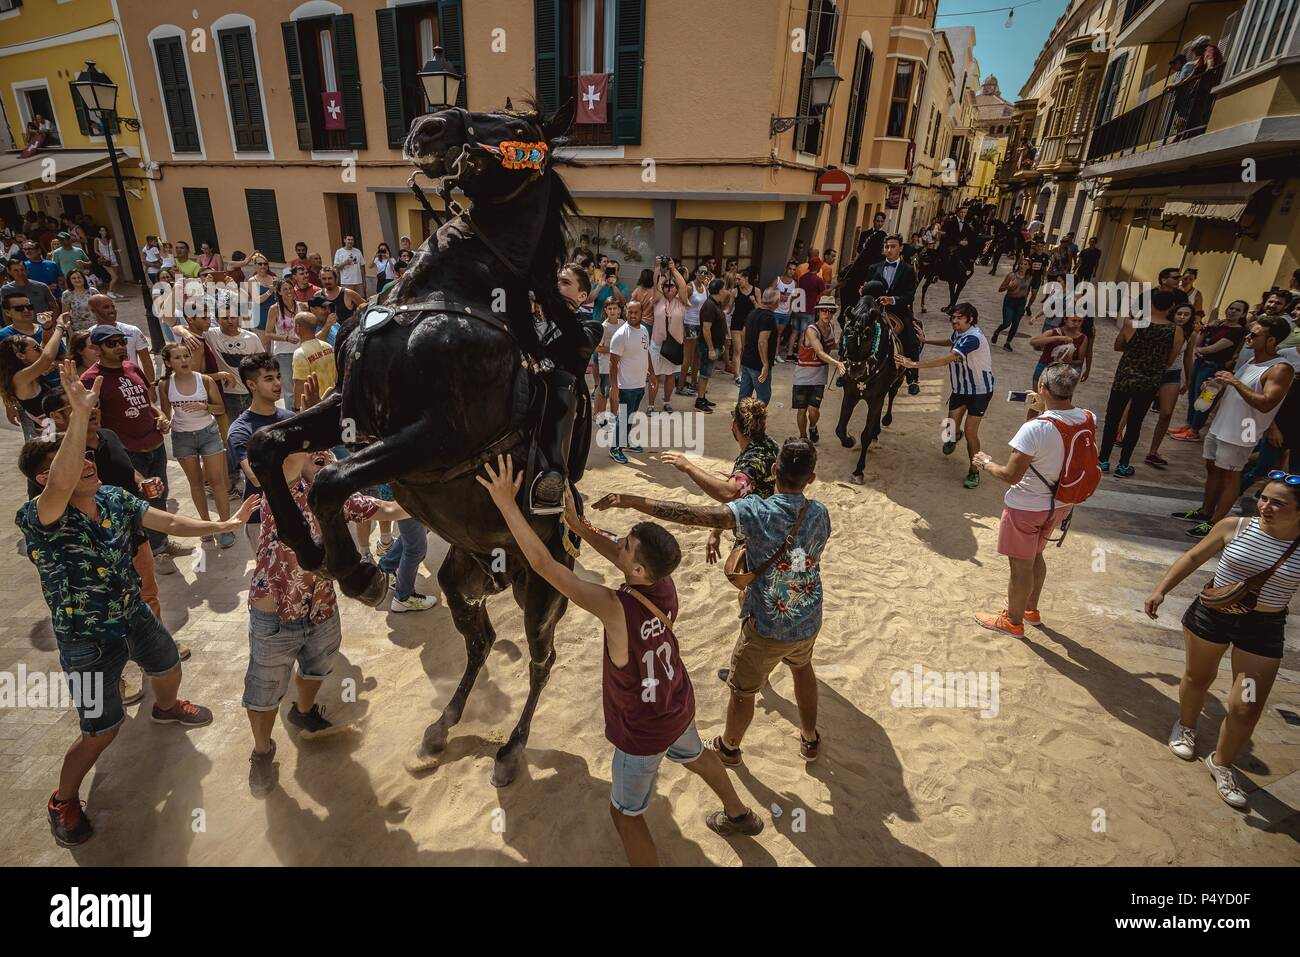 Ciutadella, Spain. 23 June, 2018:  A 'caixer' (horse rider) rears up on his horse surrounded by a cheering crowd prior to the 'Caragol des Born' parade on the eve of the traditional 'Sant Joan' (Saint John) festival in Ciutadella de Menorca Credit: Matthias Oesterle/Alamy Live News - Stock Image